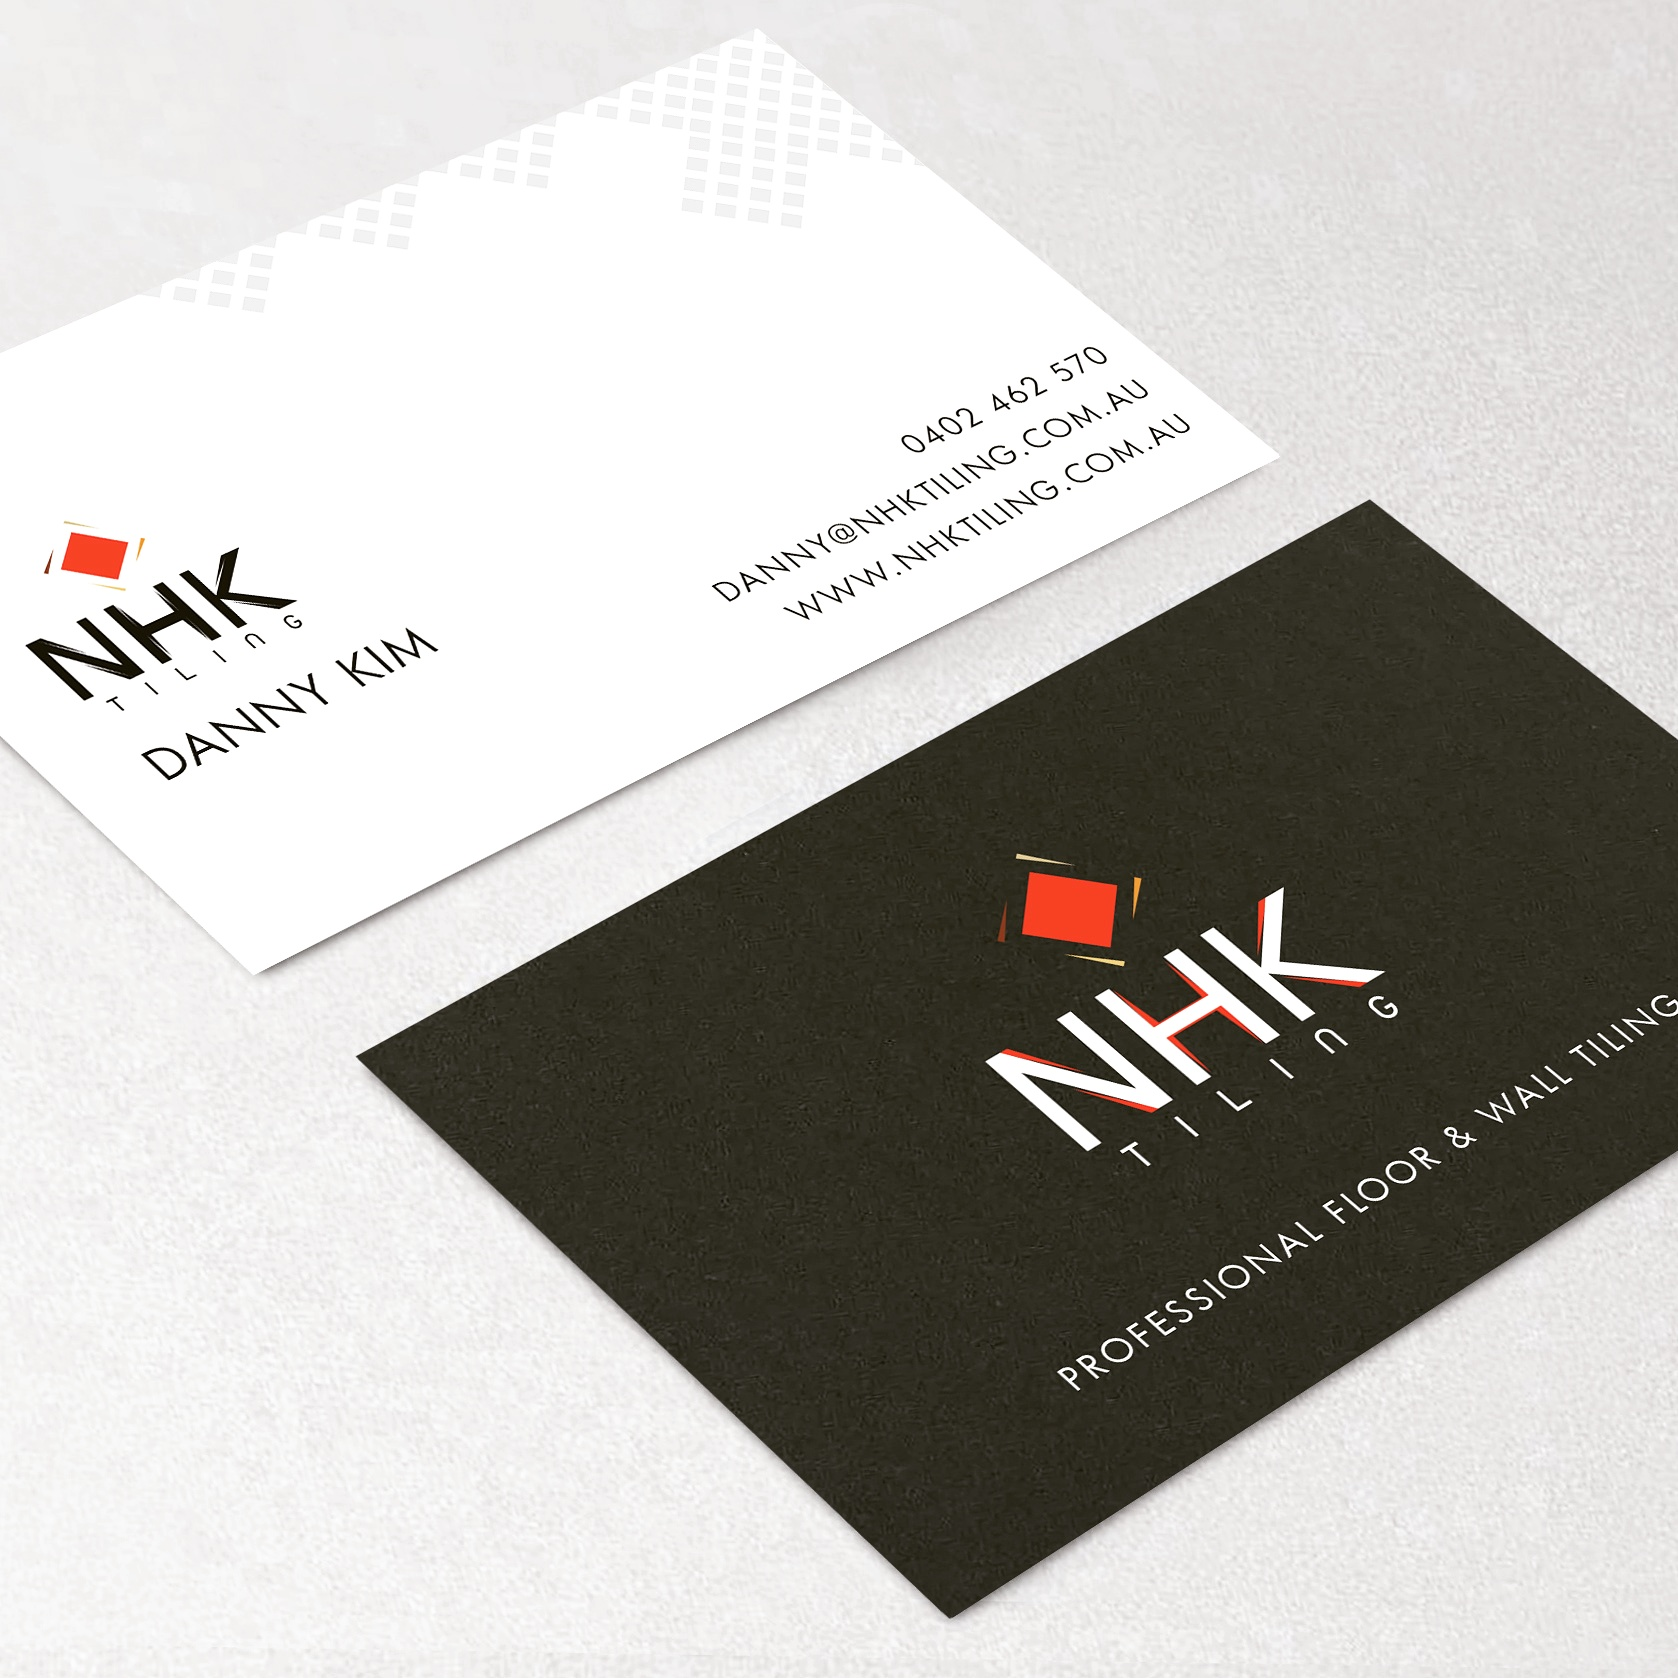 Starter package tradie signs websites nhk tiling business card reheart Image collections